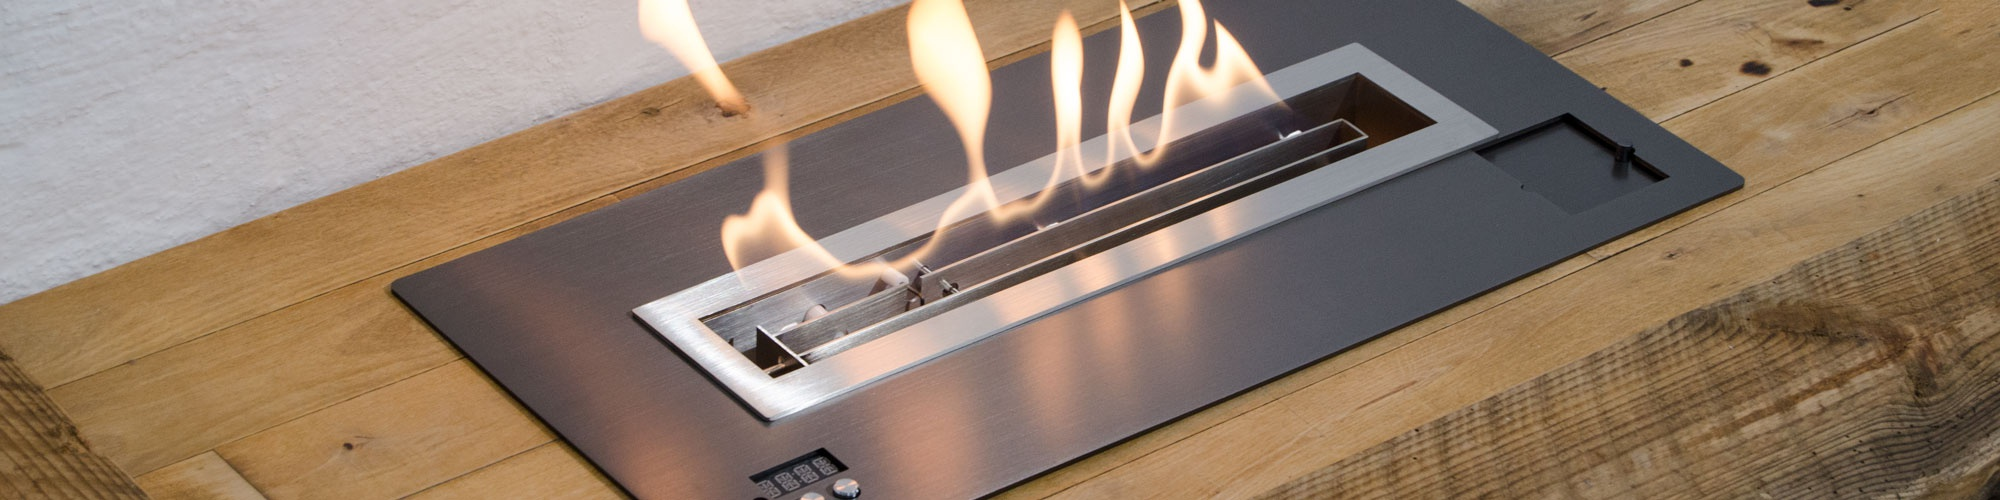 Bioethanol fireplace remote control with automatic fire